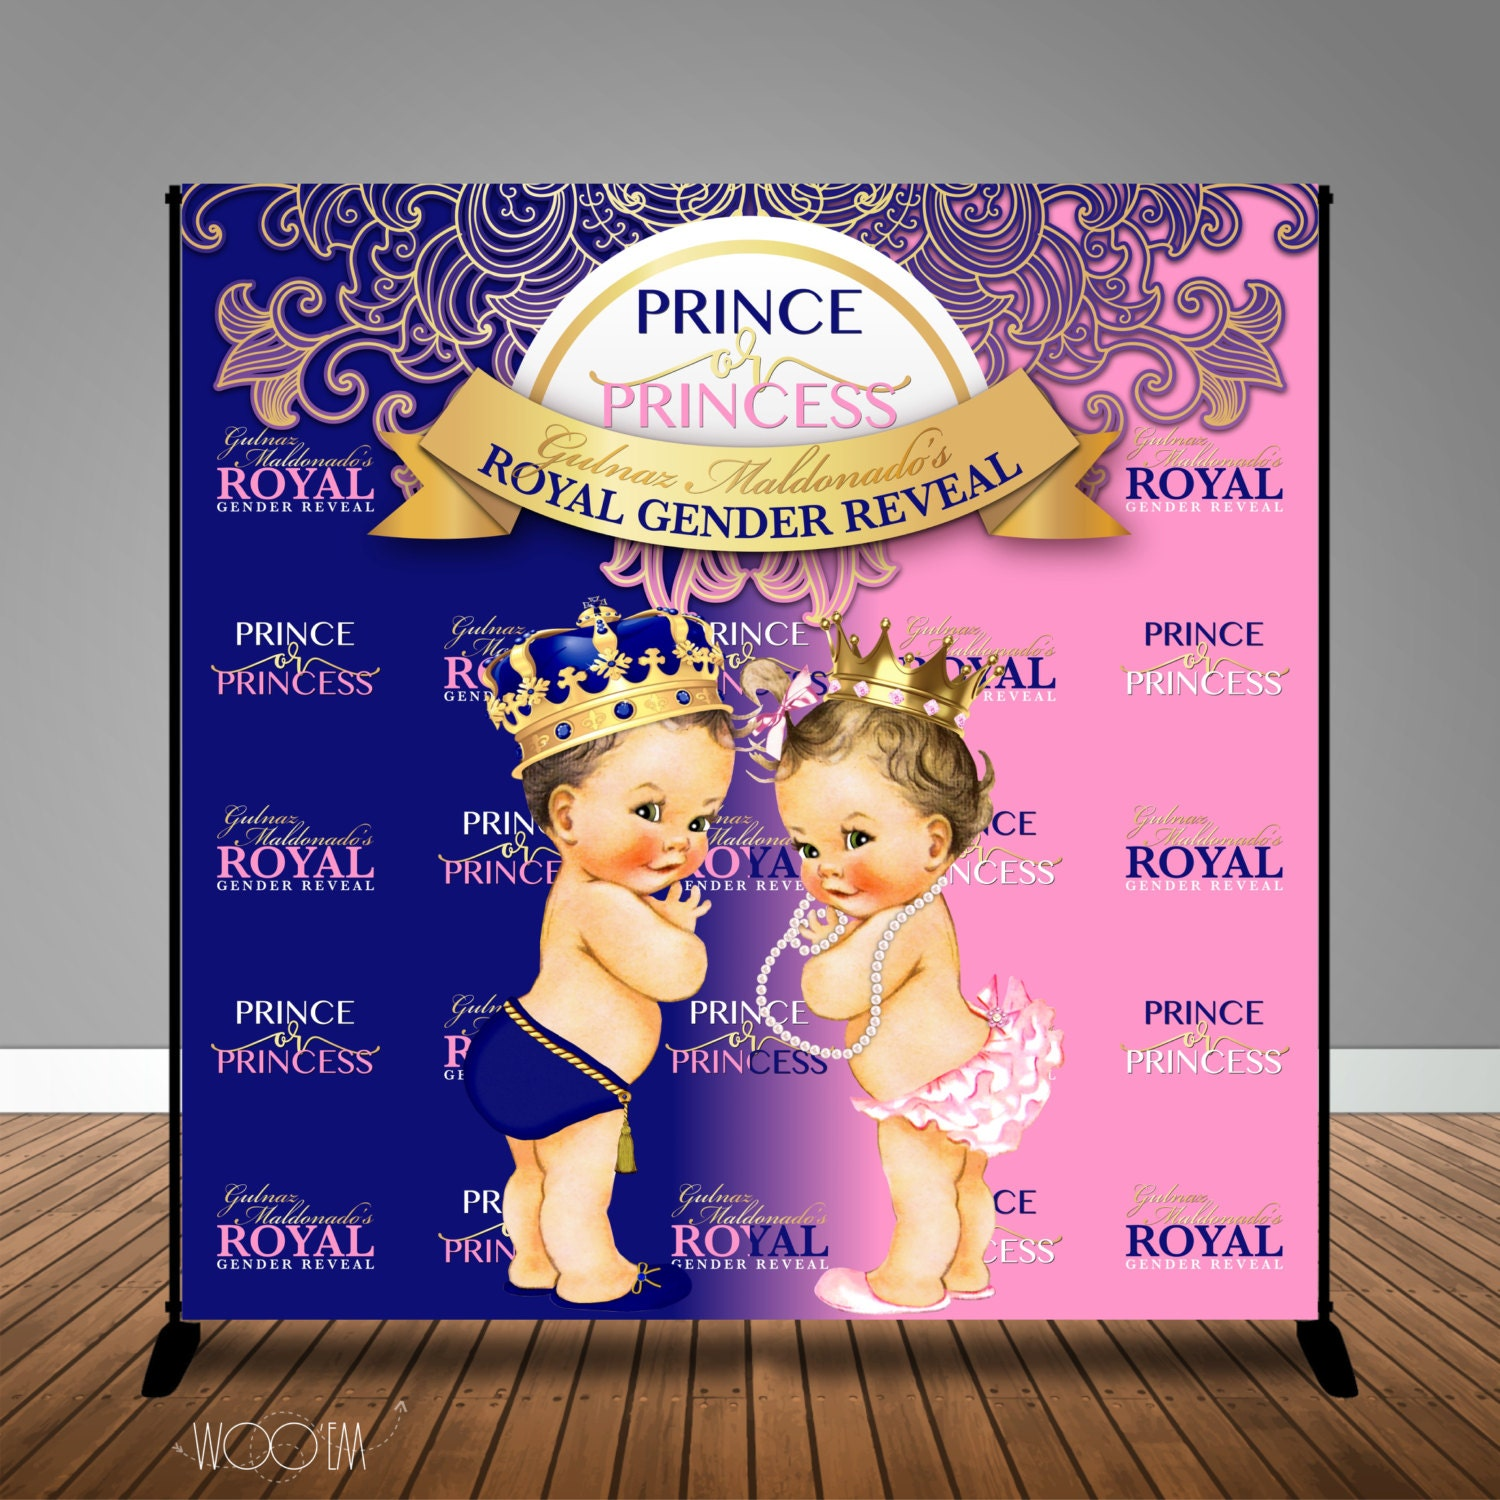 Royal Baby Shower Gender Reveal 8x8 Backdrop / Step & Repeat